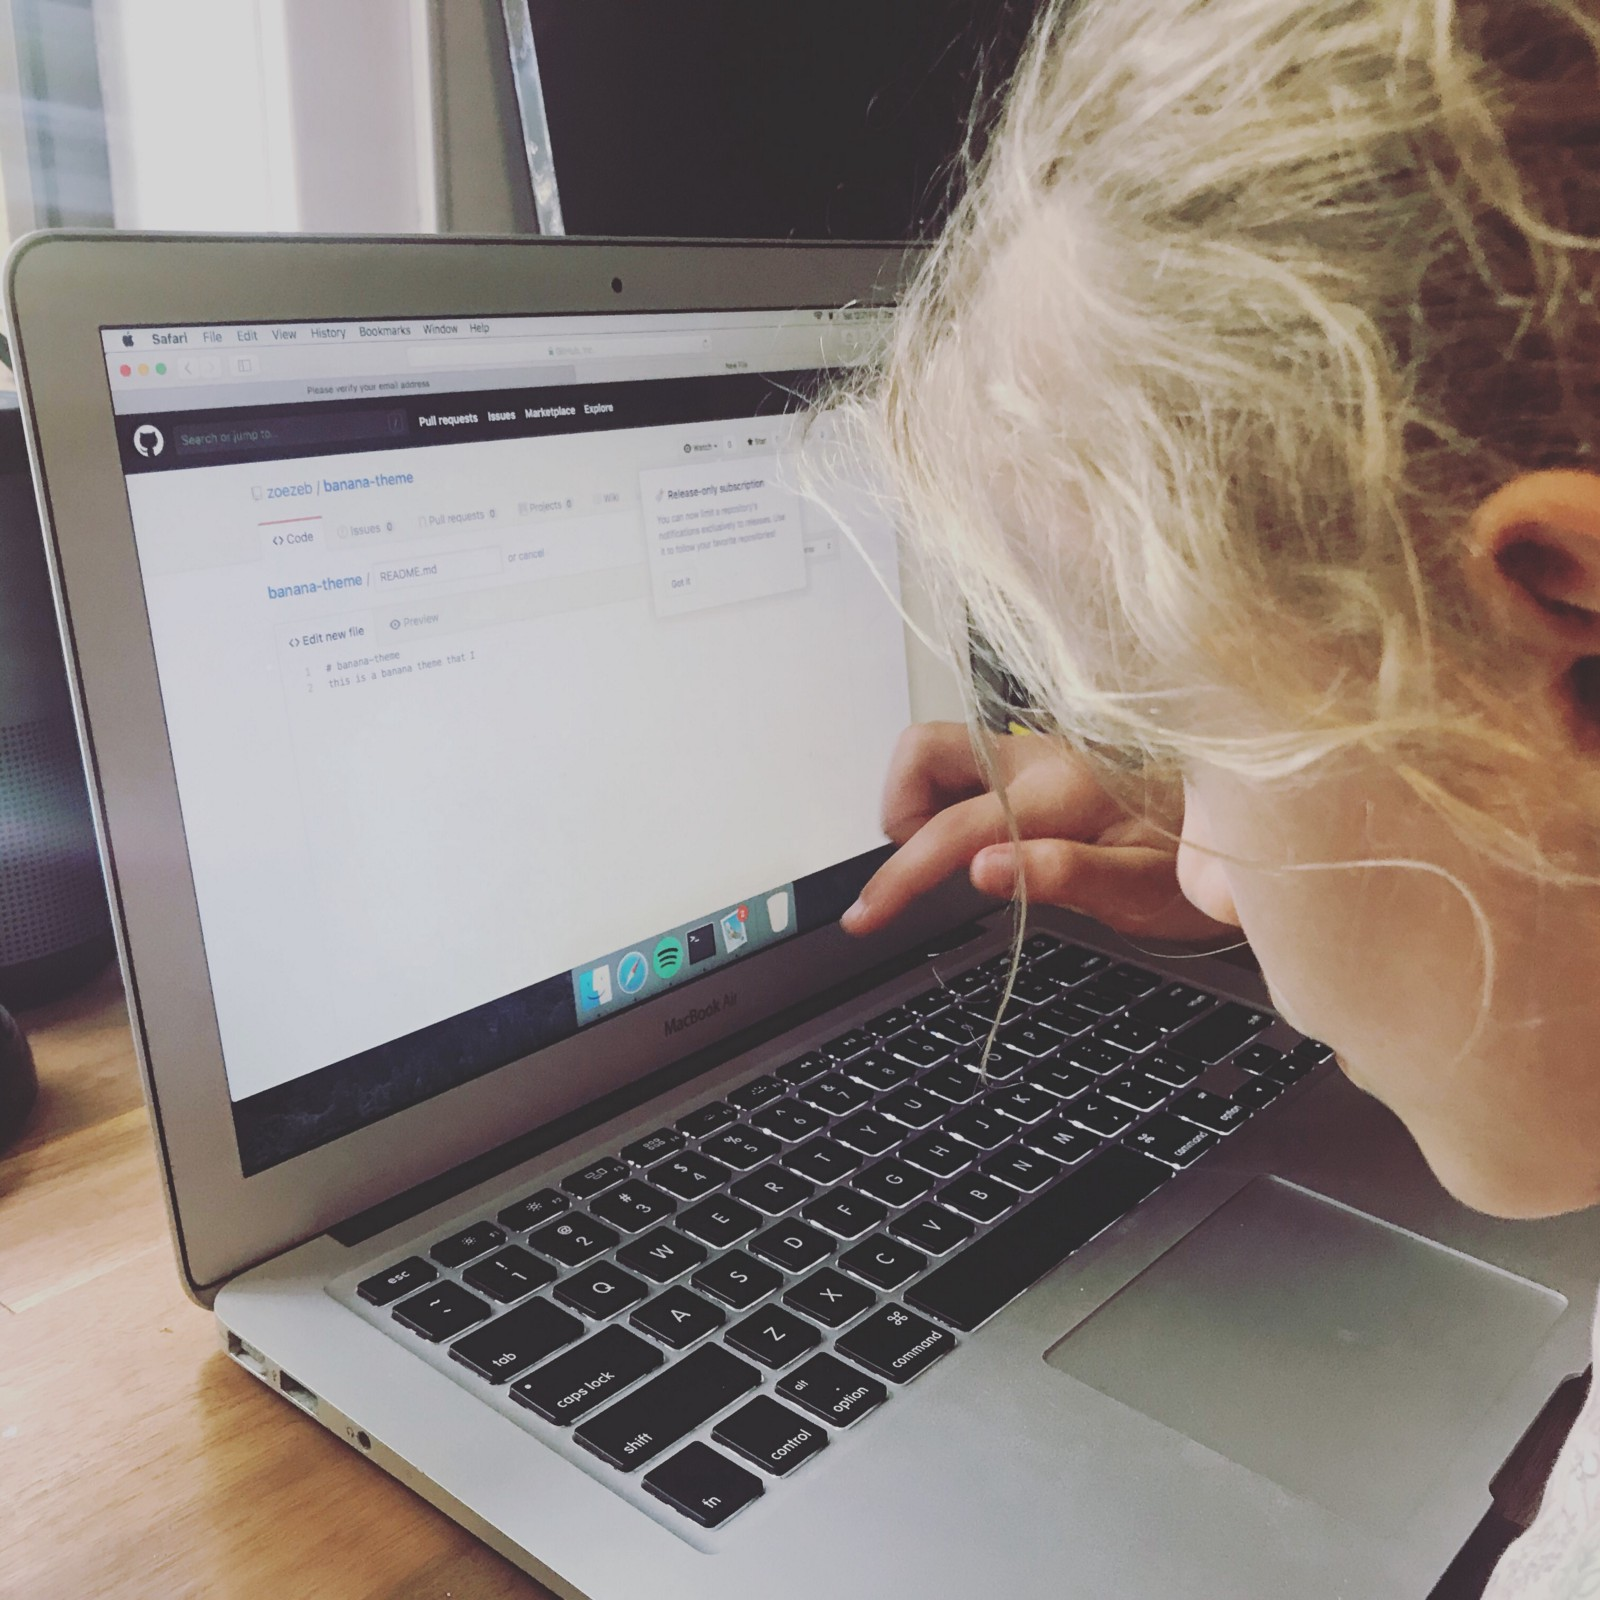 5 easy coding projects to do with kids this holiday - By